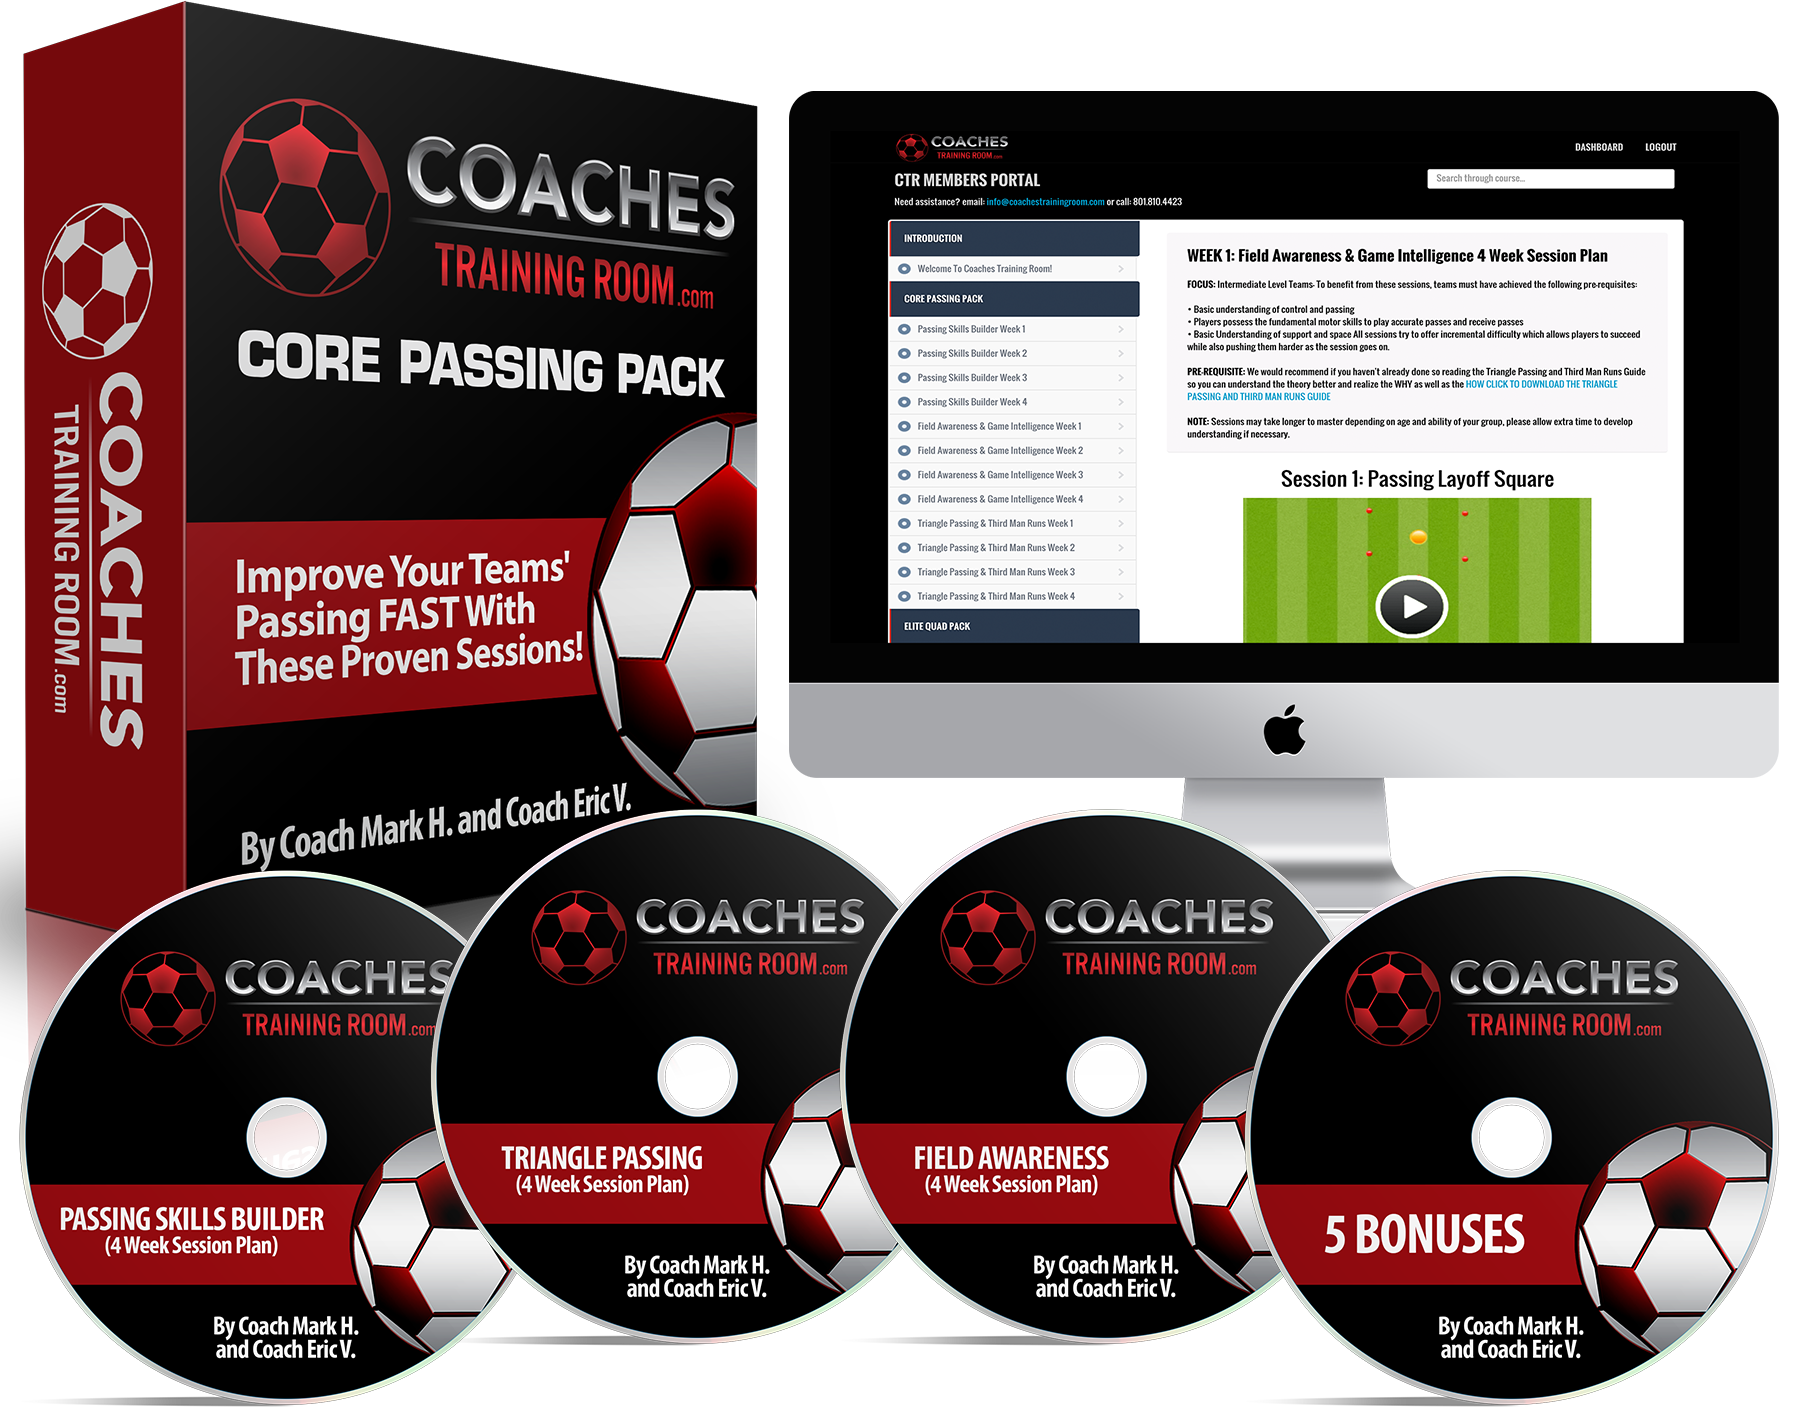 Coaches-Training-Room-Core-Passing-Pack